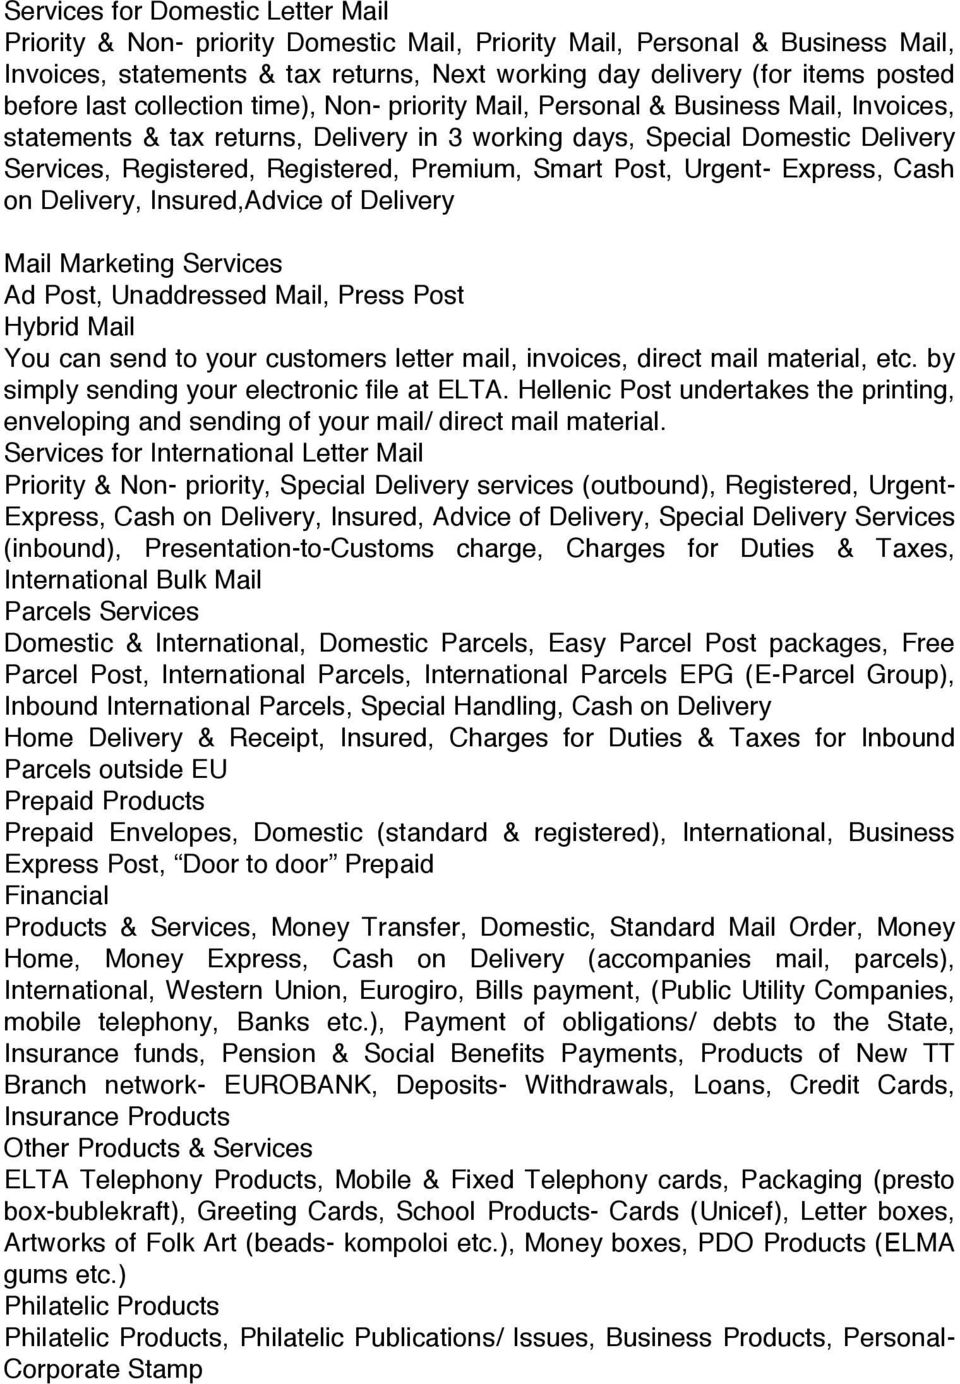 Premium, Smart Post, Urgent- Express, Cash on Delivery, Insured,Advice of Delivery Mail Marketing Services Ad Post, Unaddressed Mail, Press Post Hybrid Mail You can send to your customers letter